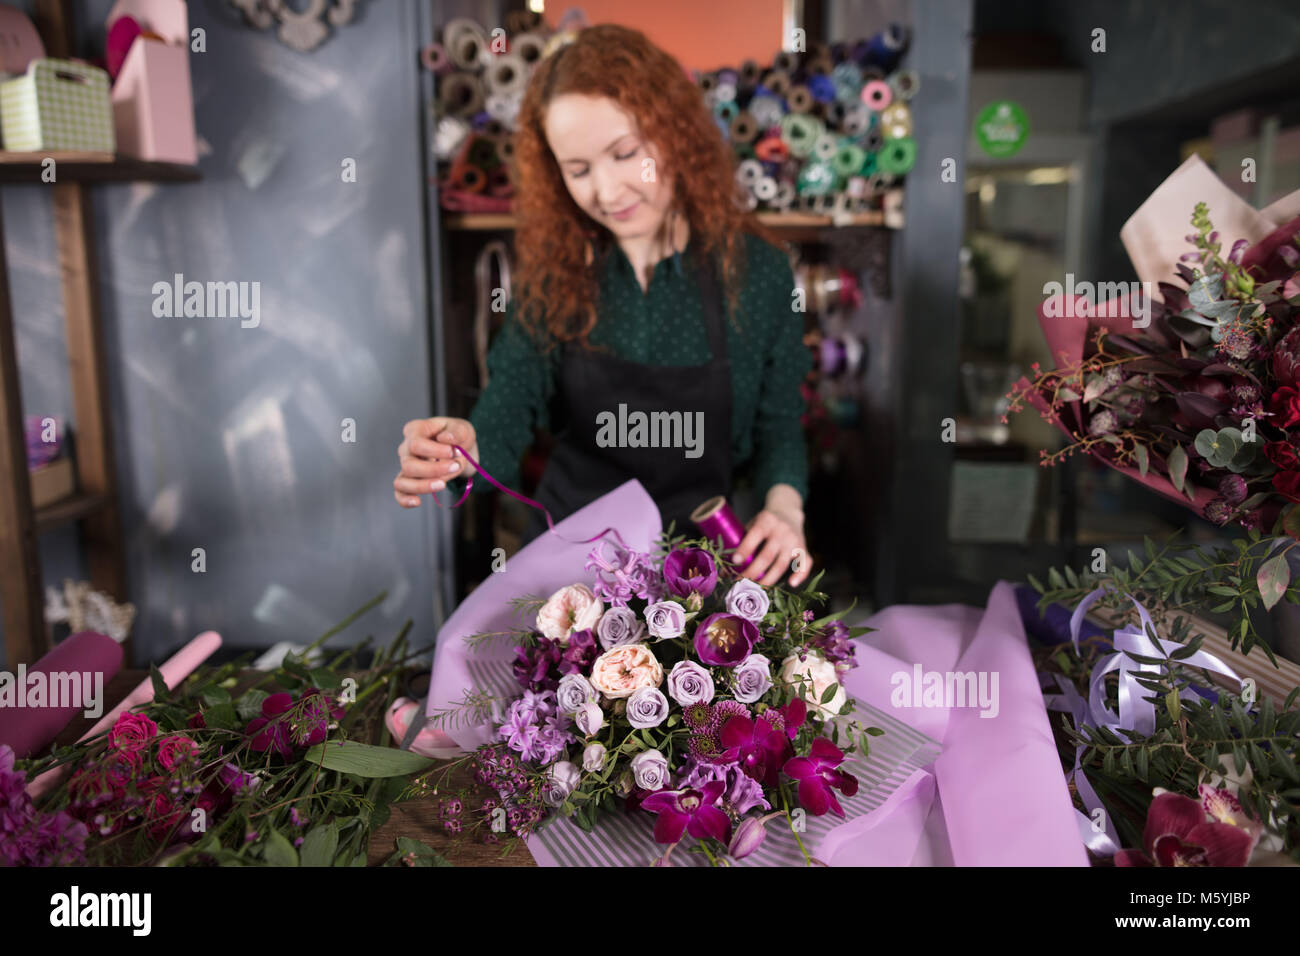 tapping up purple and white bouquet at shop - Stock Image